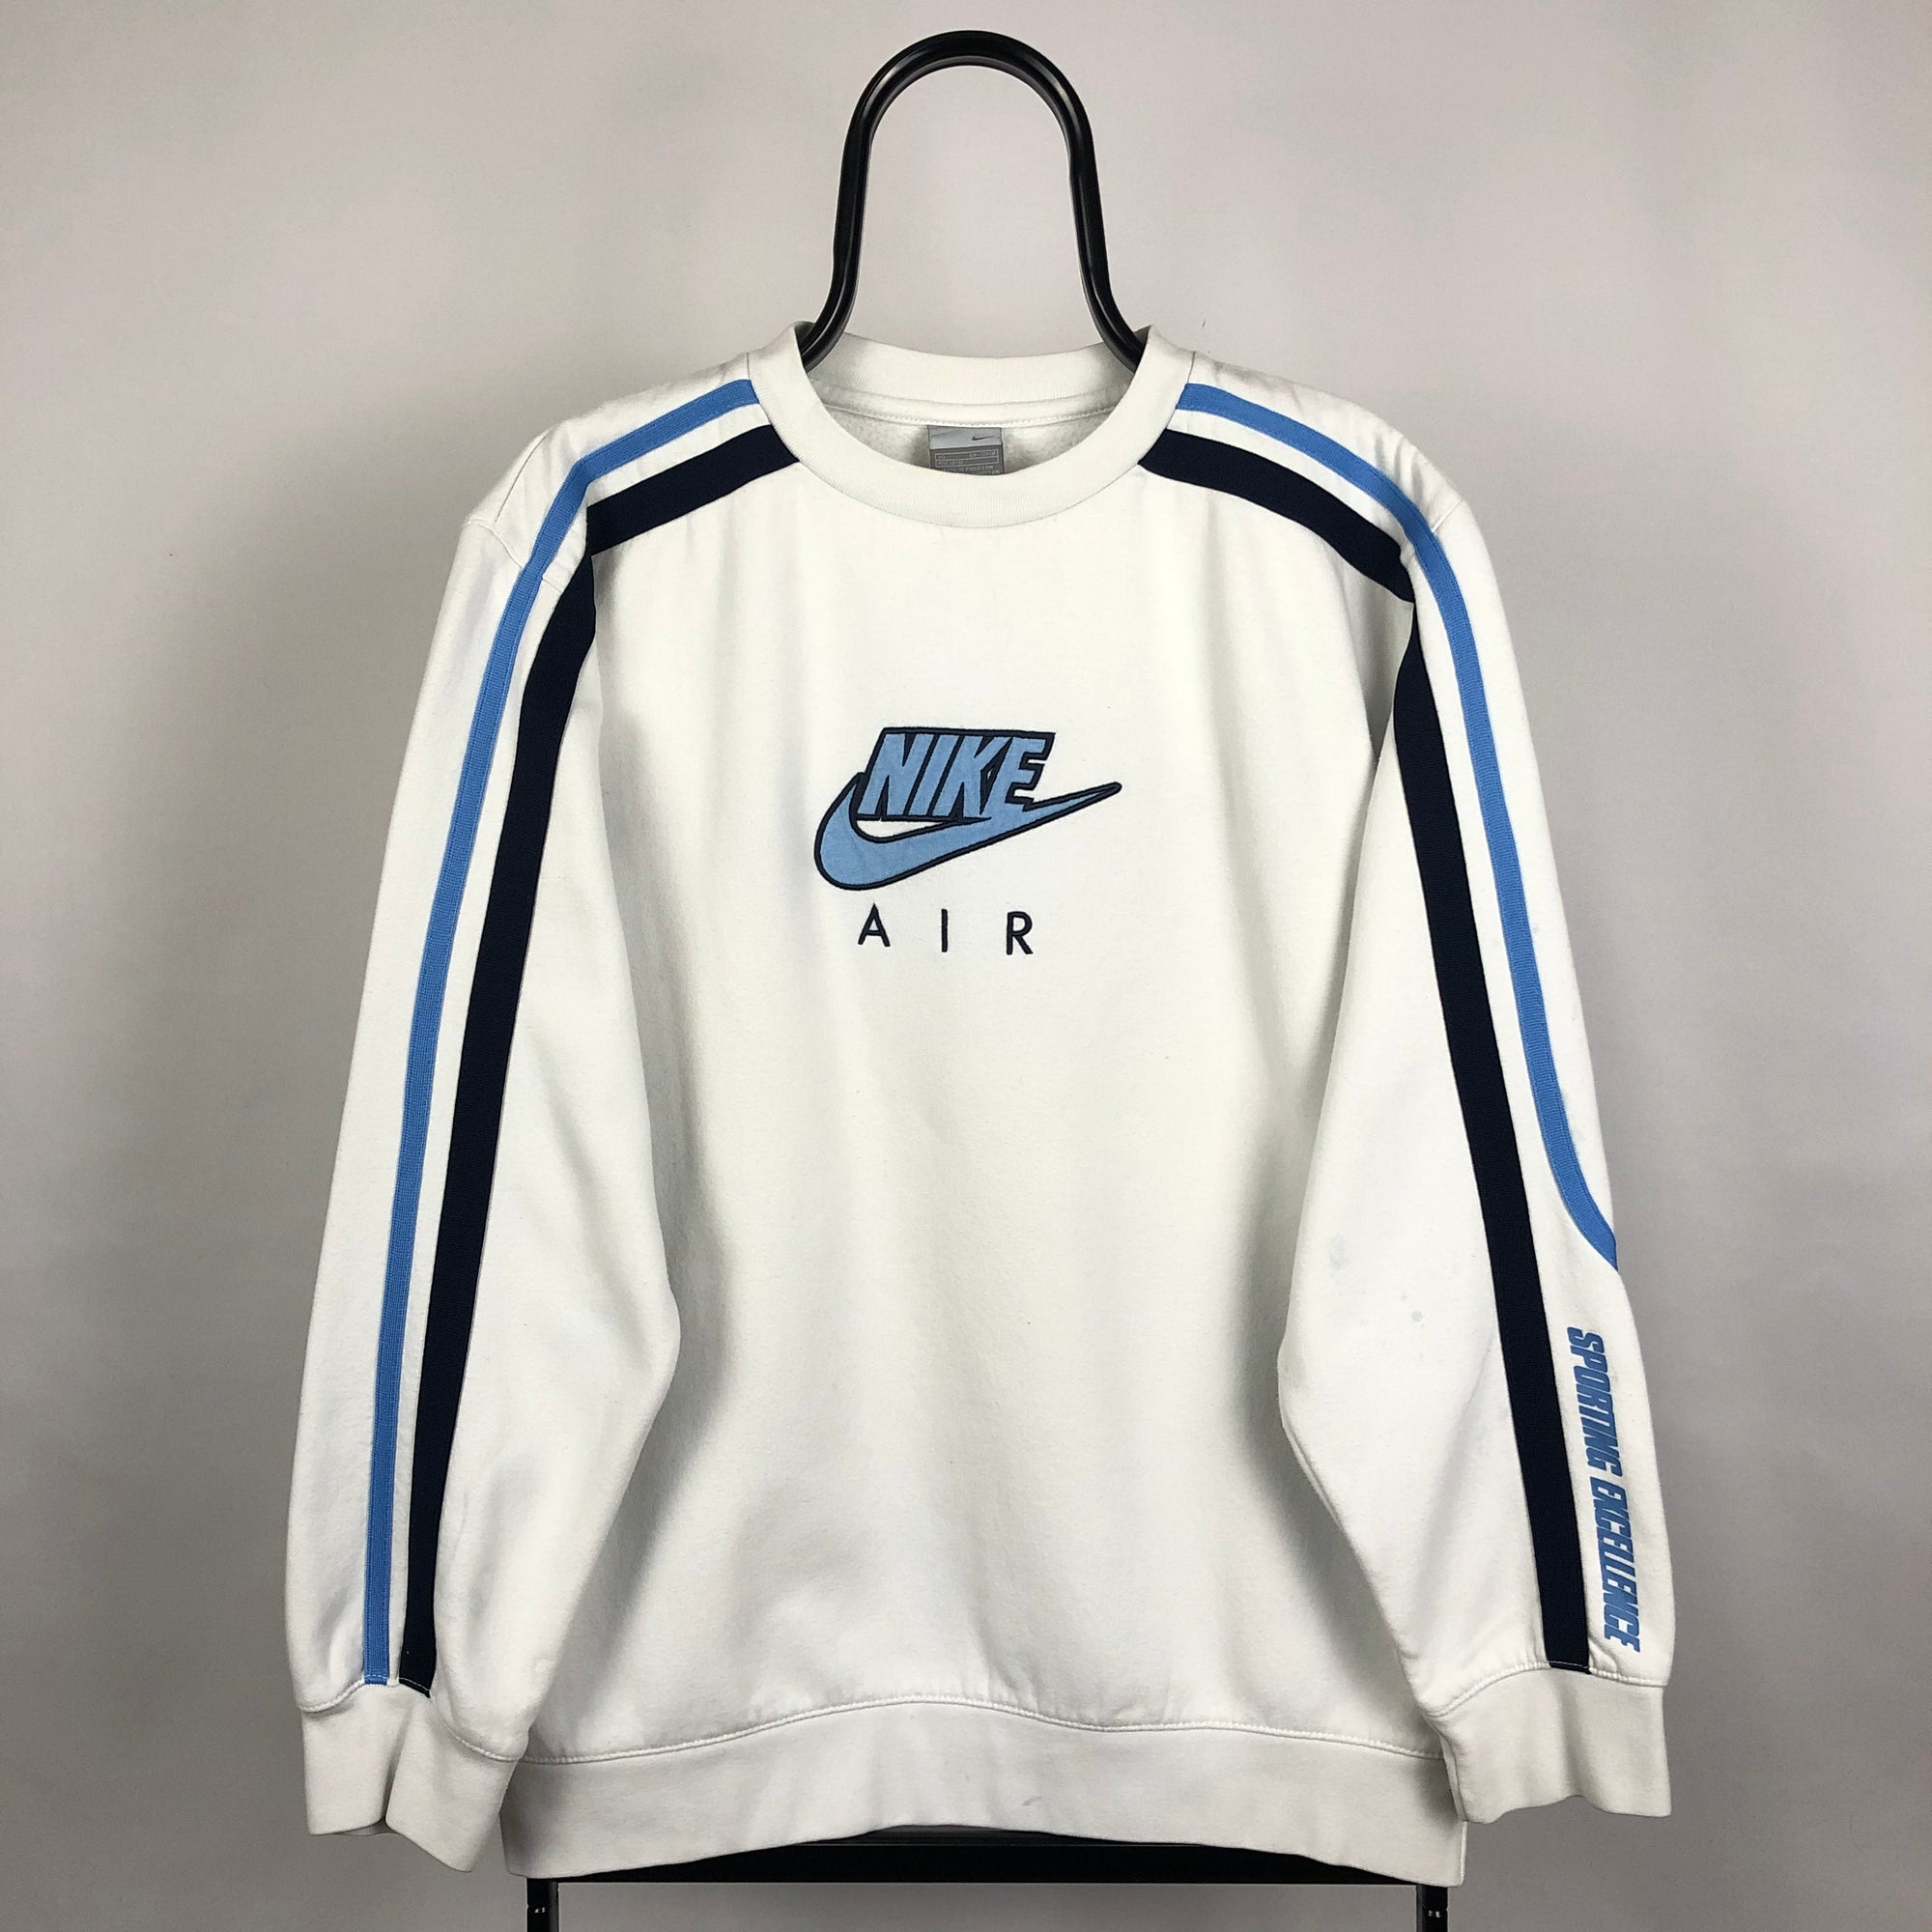 Nike Air Sweatshirt in White/Baby Blue & Navy - Men's Small/Women's Large